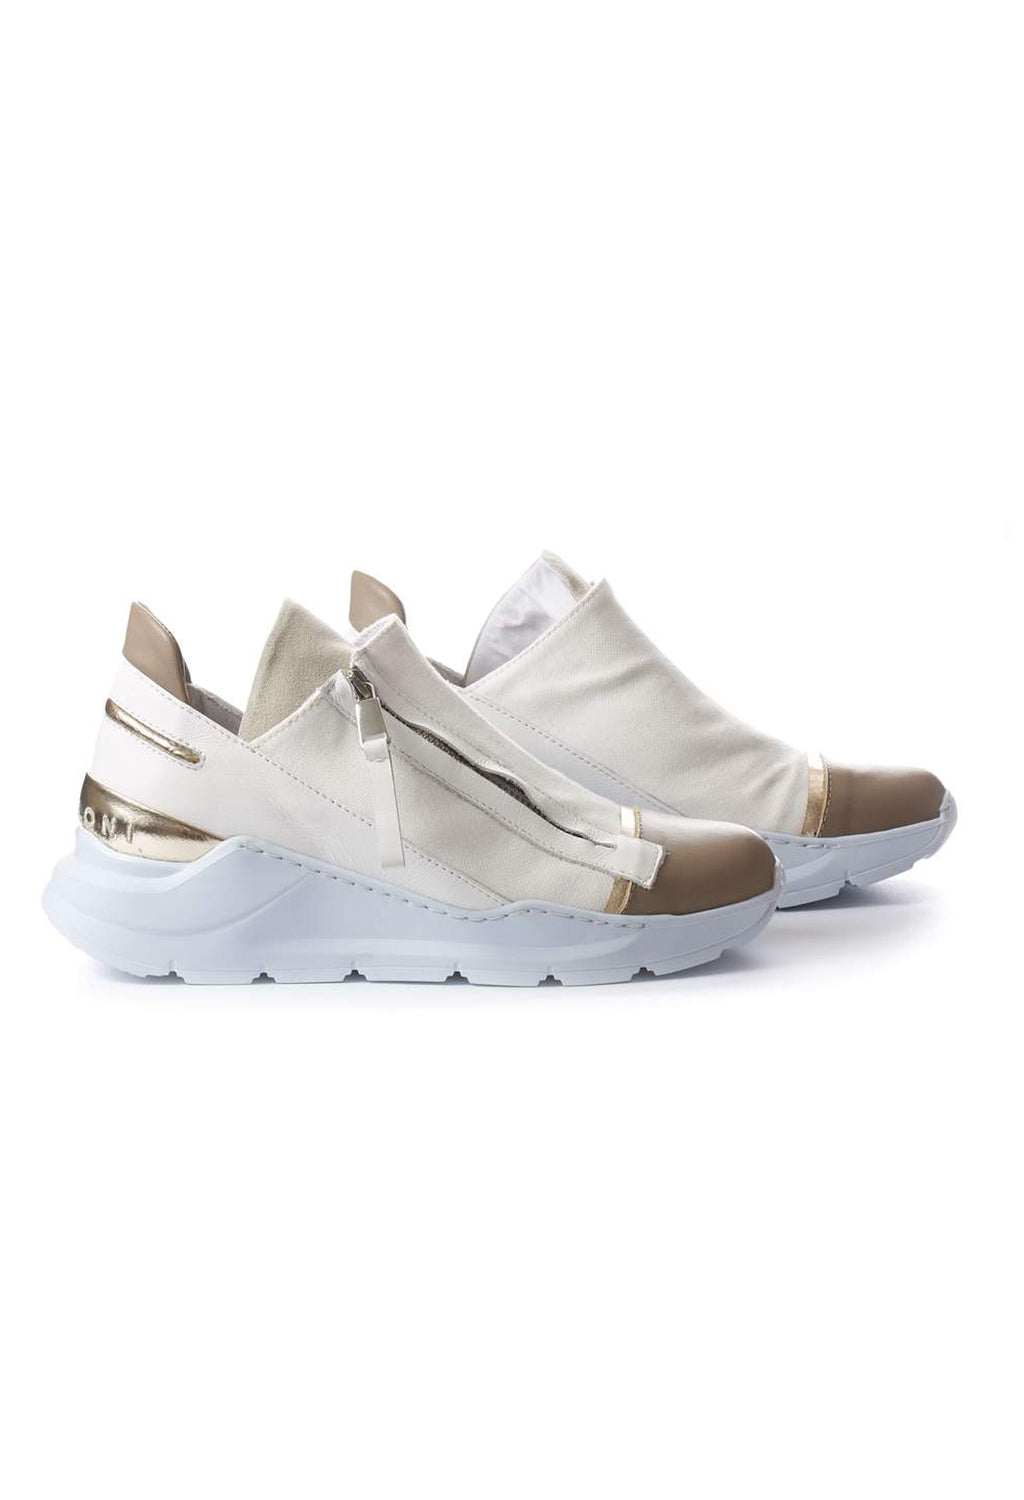 Chunky Slip On Trainers with Metallic Detail in Pamplona Corda / Pamplona Bianco / Nalux Argento